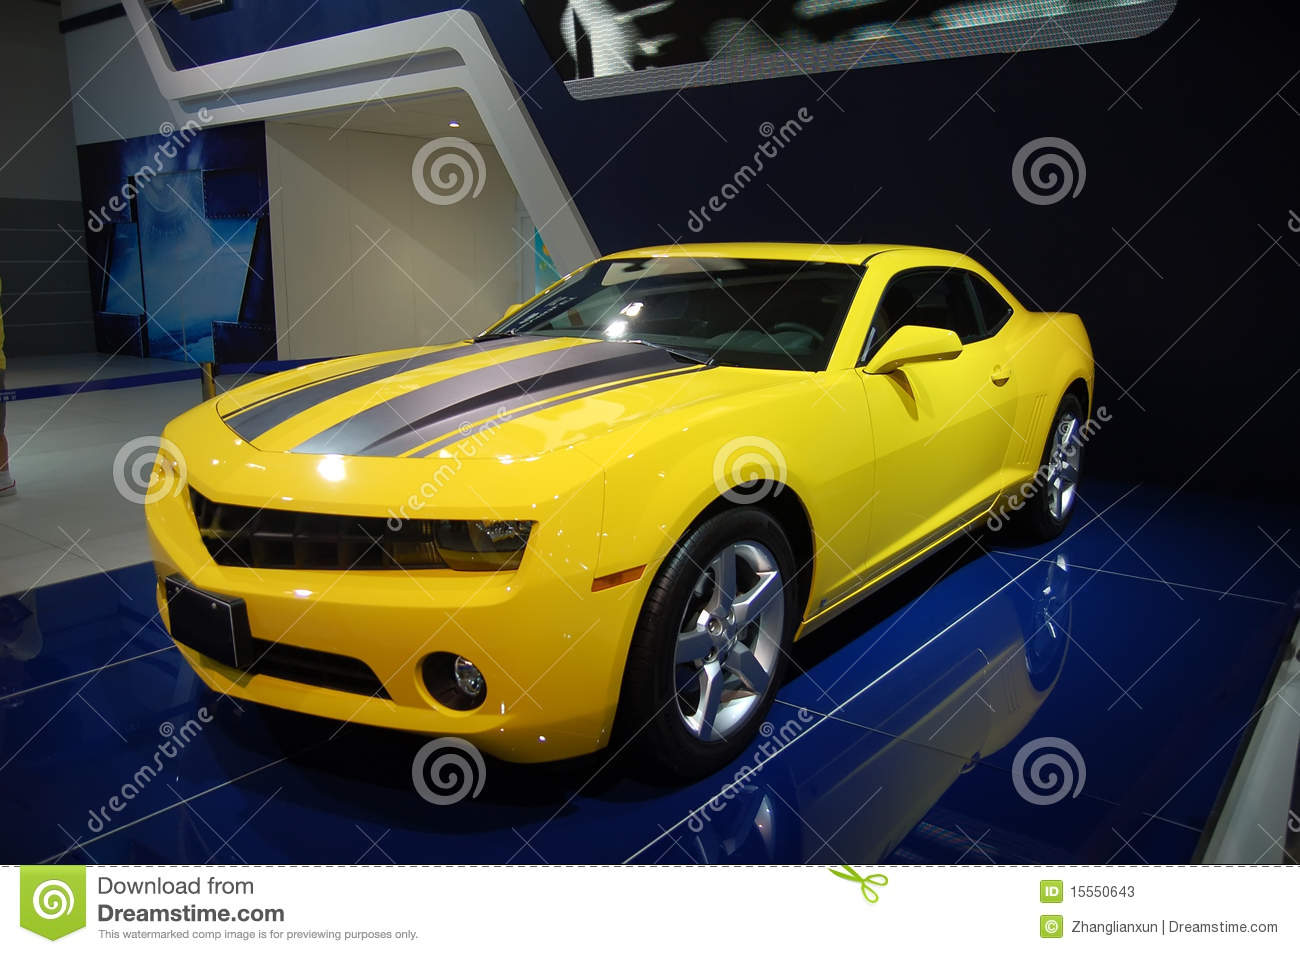 vehicle yellow sports car - photo #24